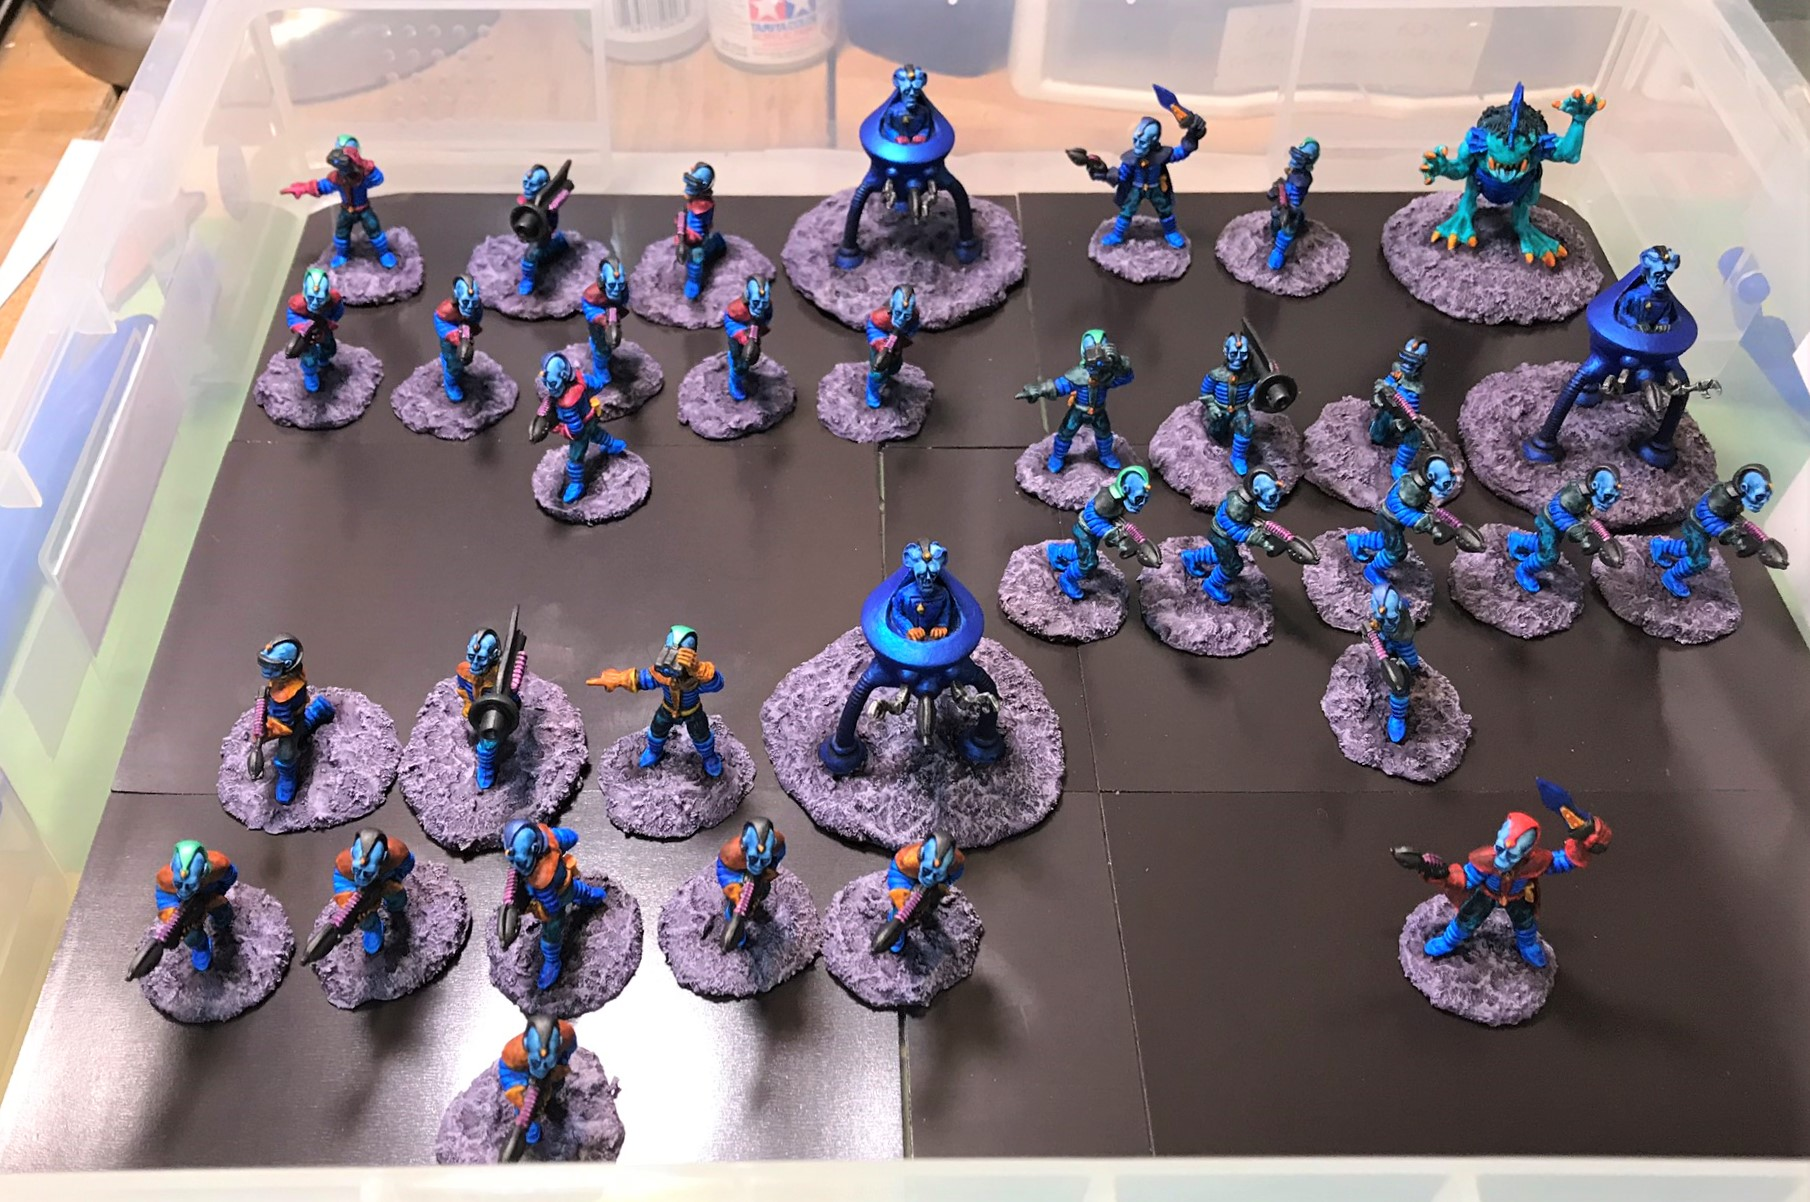 16 Retrovian Platoon complete in box